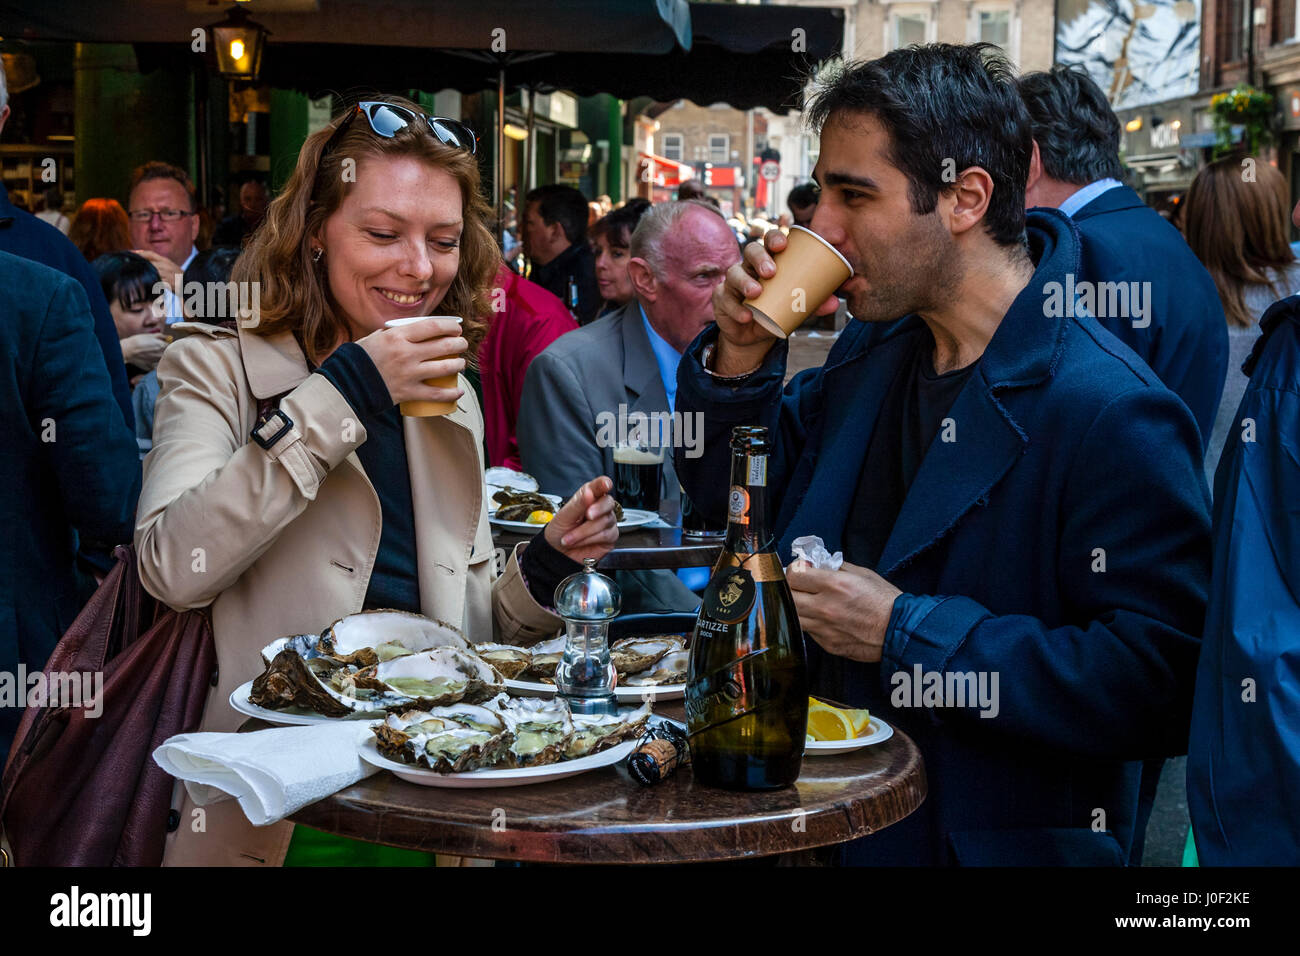 Two People Enjoying Prosecco and Oysters Outside A Restaurant In Borough Market, London, England - Stock Image